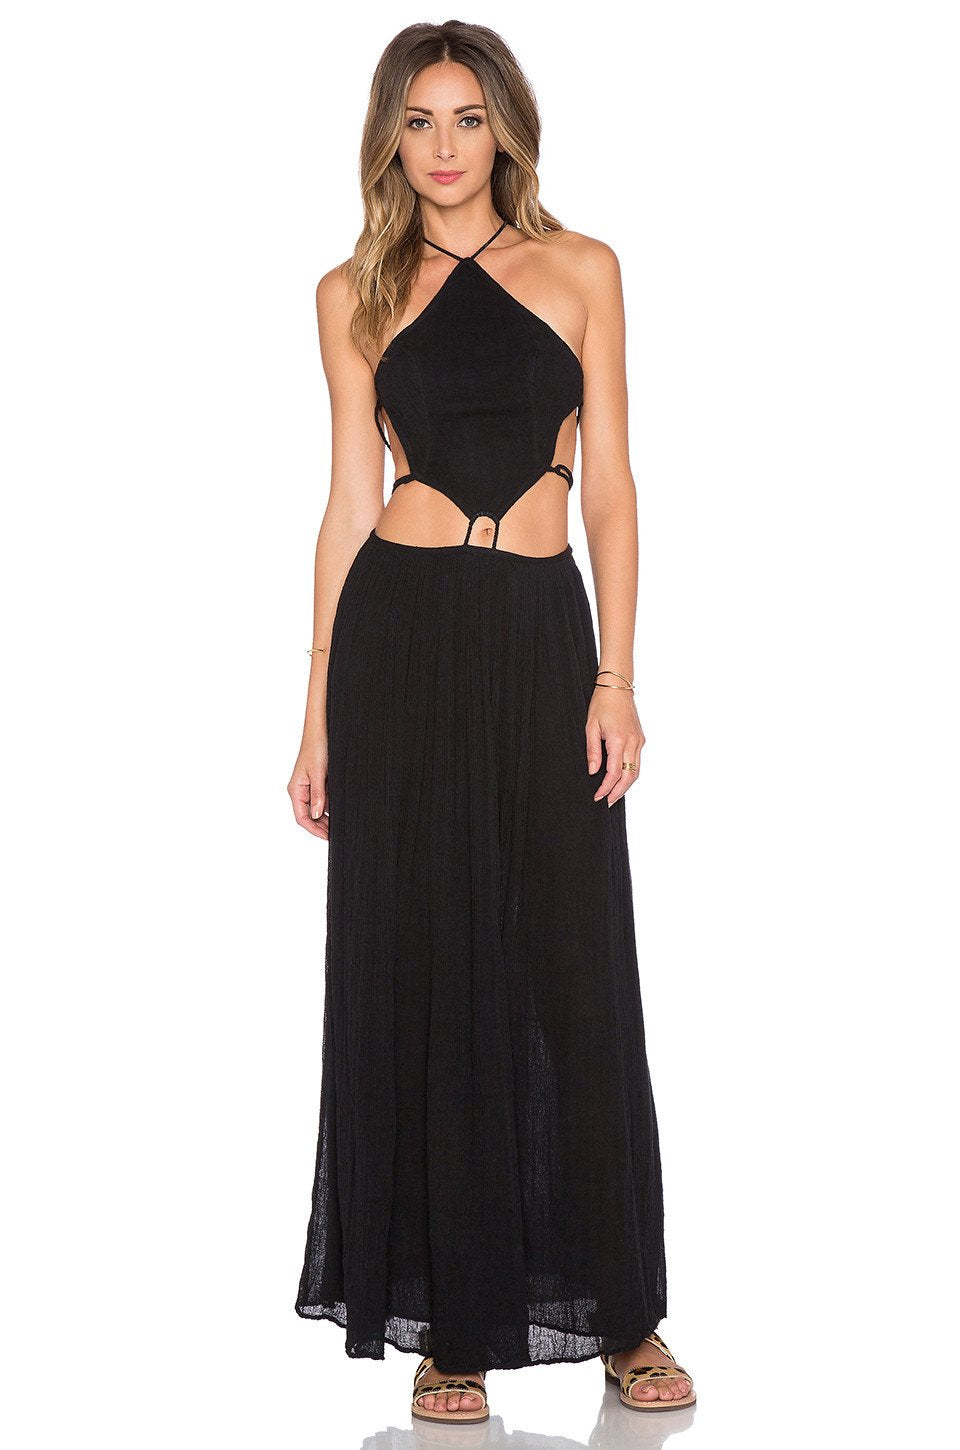 Pura Vida Maxi Dress - Kustom Label - 1